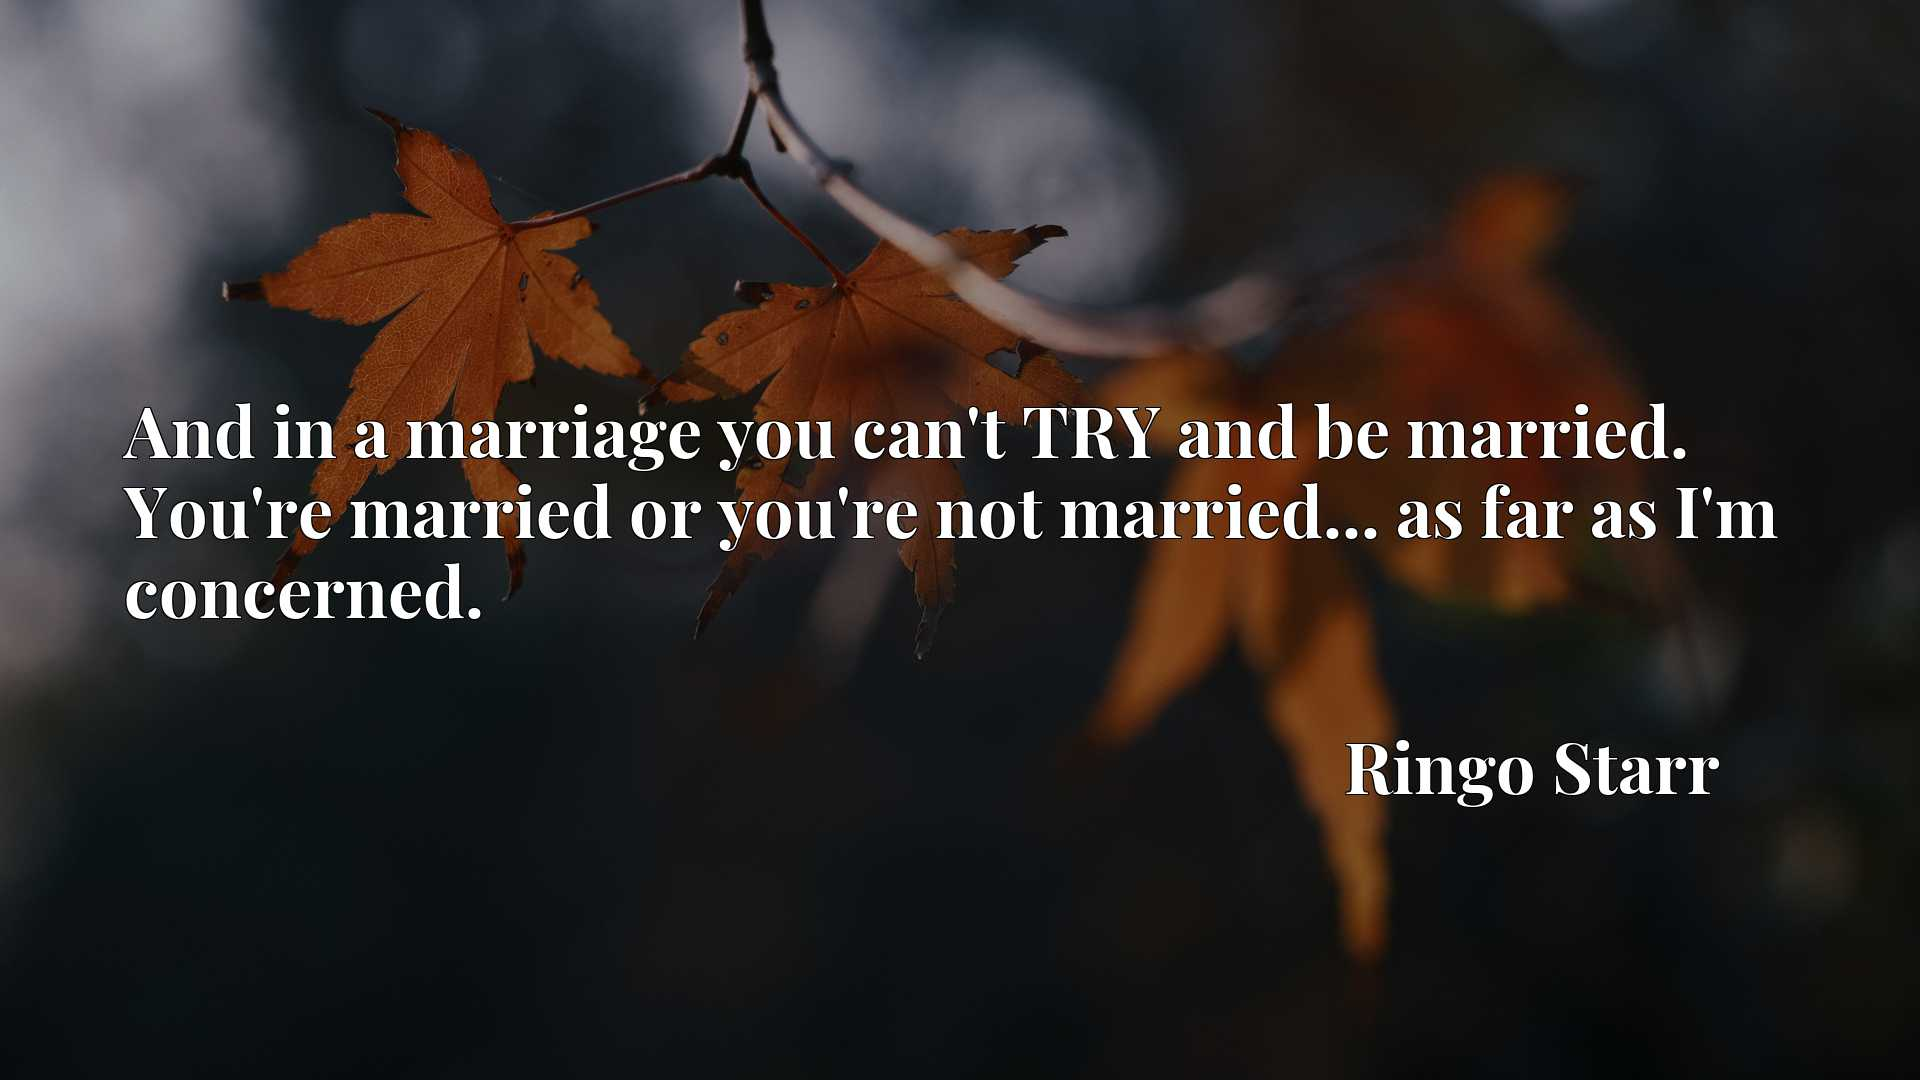 And in a marriage you can't TRY and be married. You're married or you're not married... as far as I'm concerned.